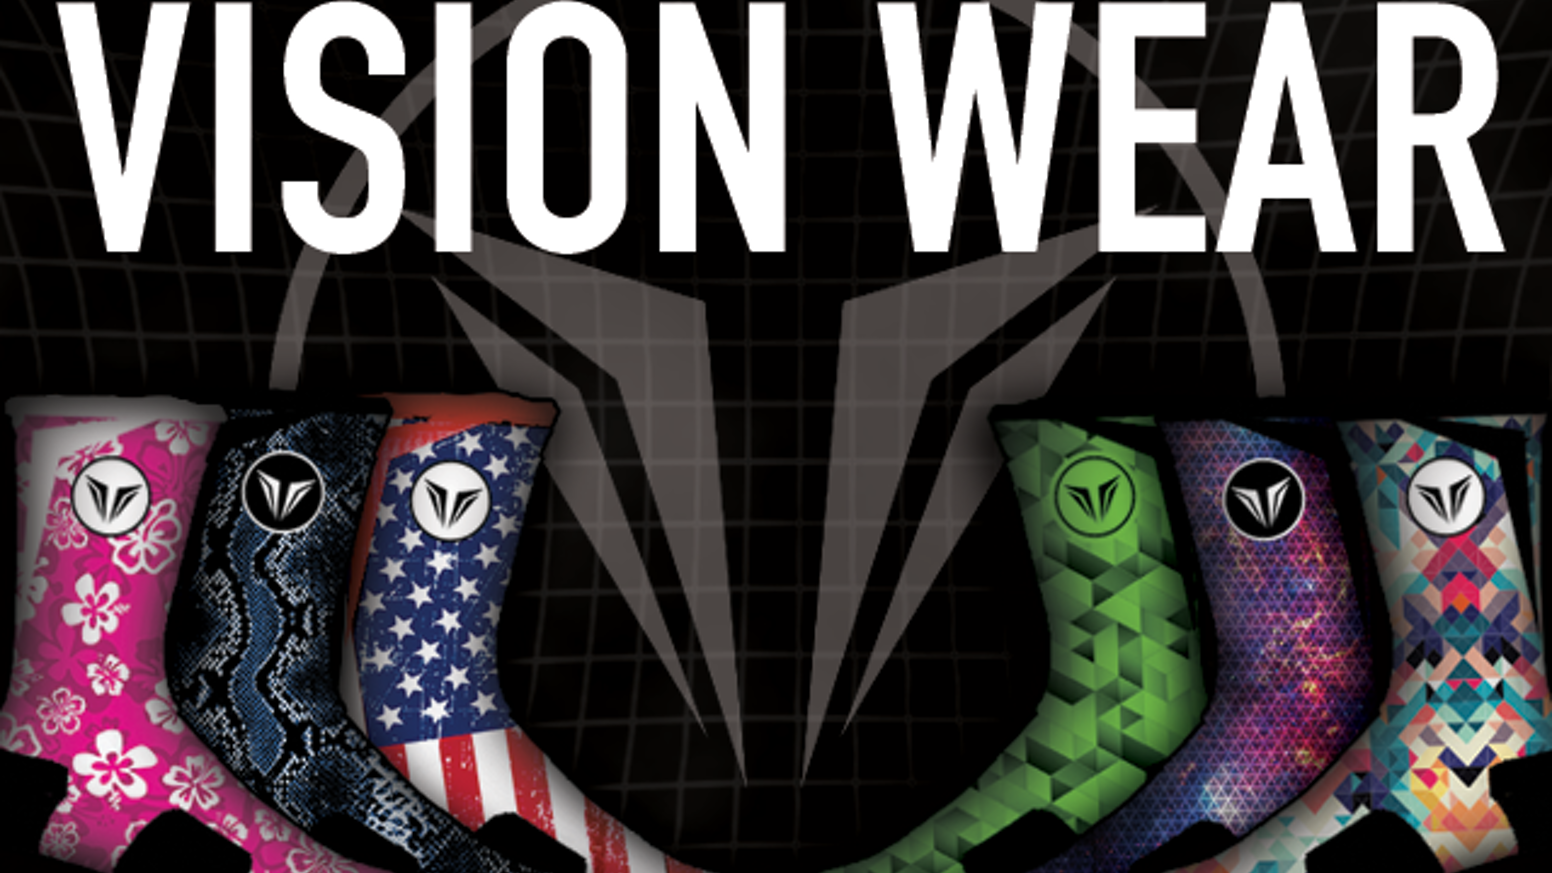 Vision Wear is revolutionizing the athletic sock! Vision Wear socks provide maximum comfort, durability, and a variety of styles!